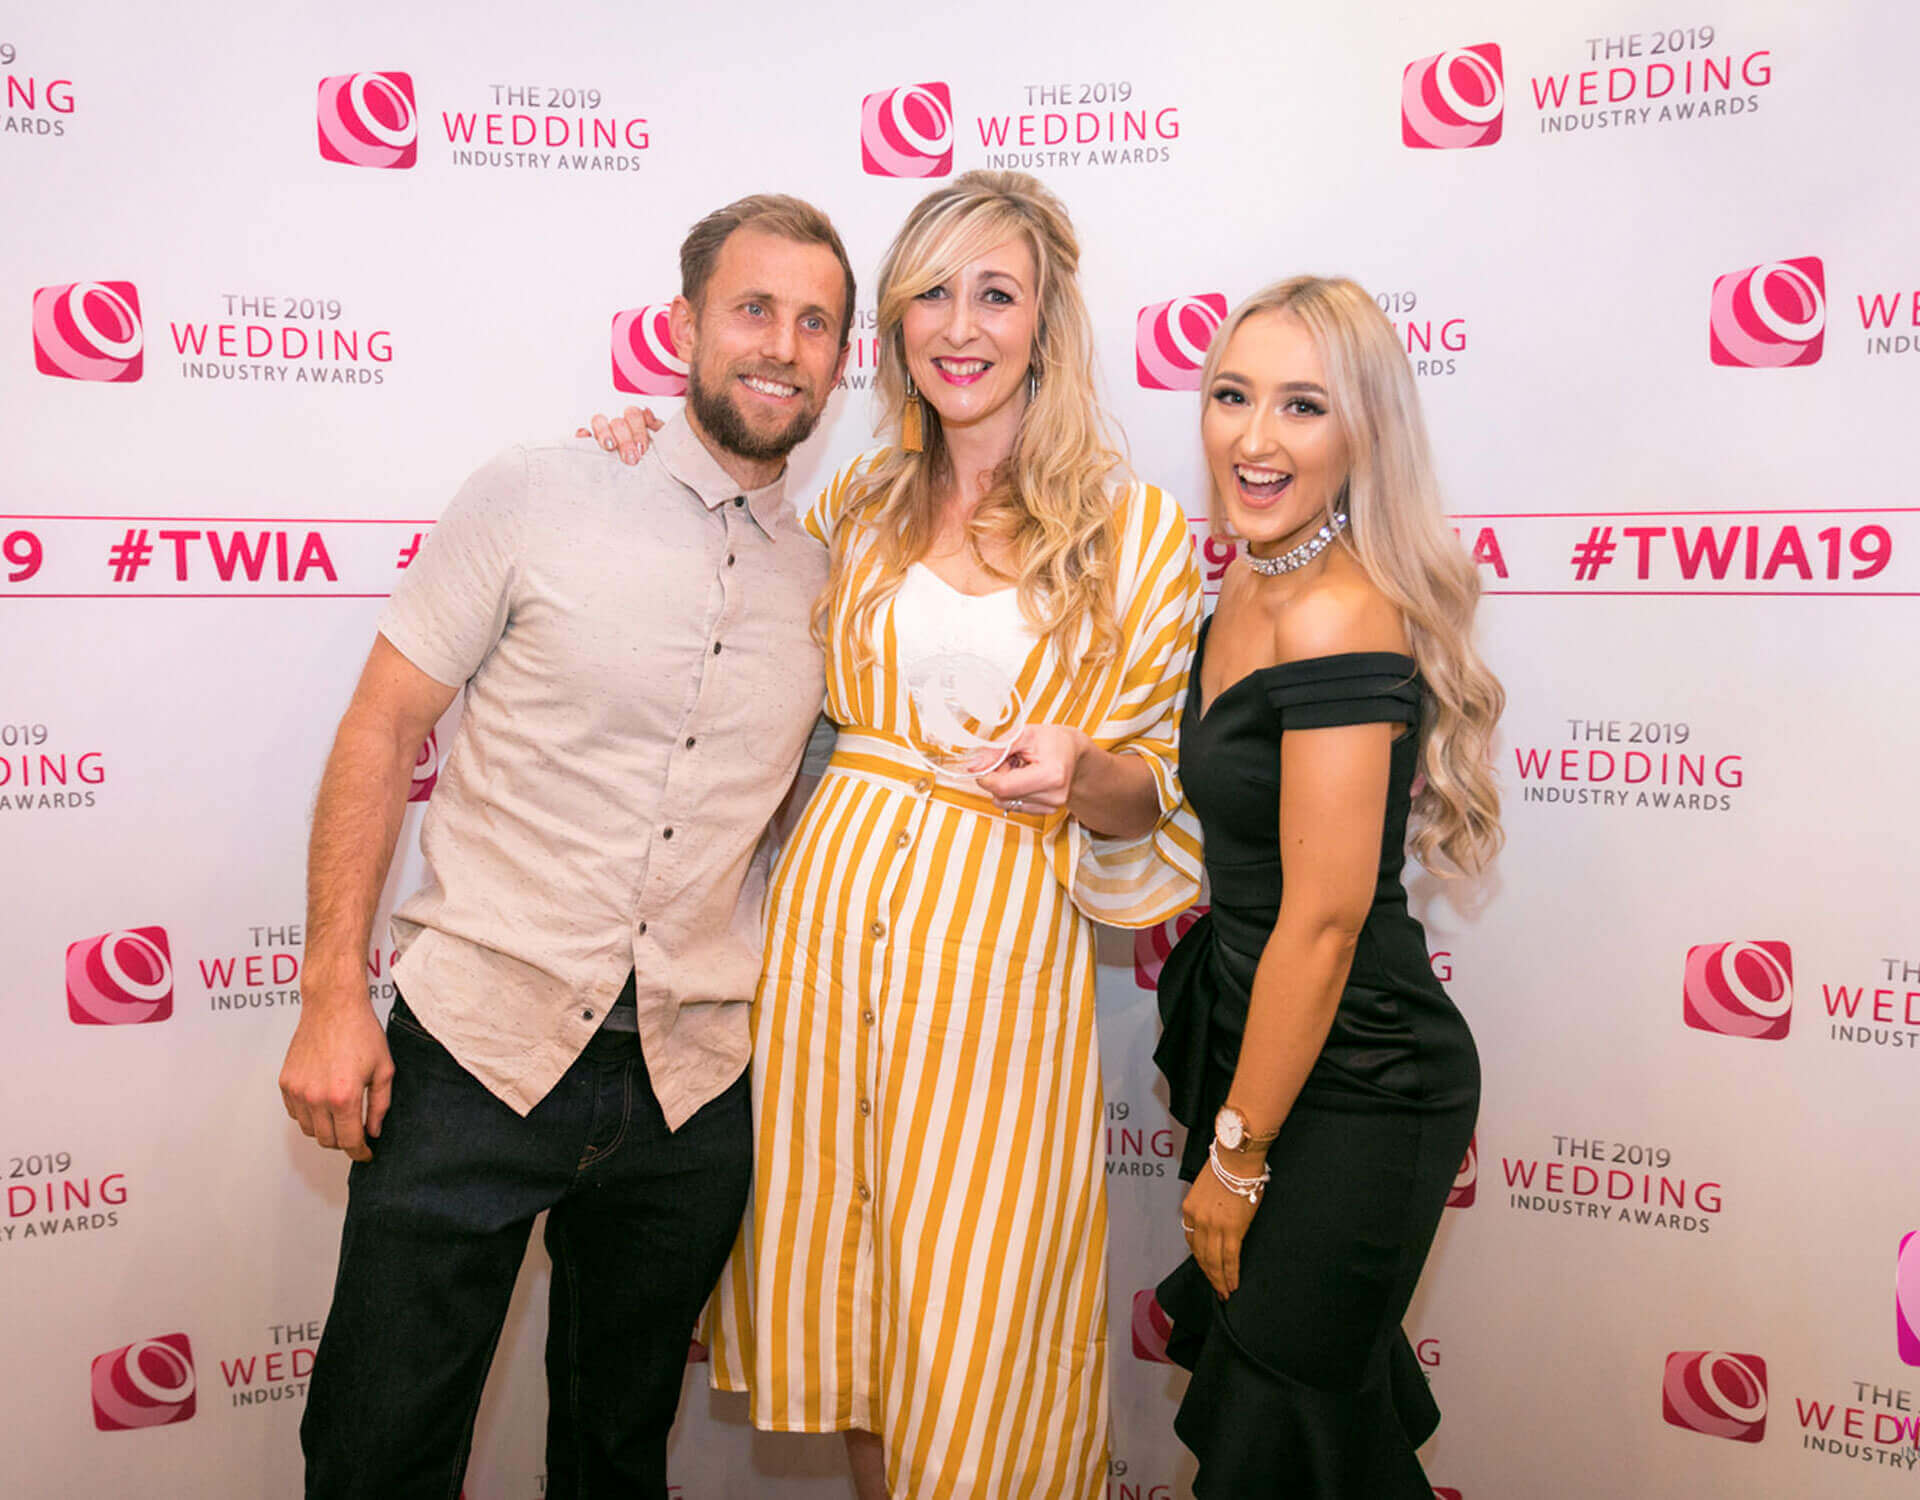 The 2019 Wedding Awards Team